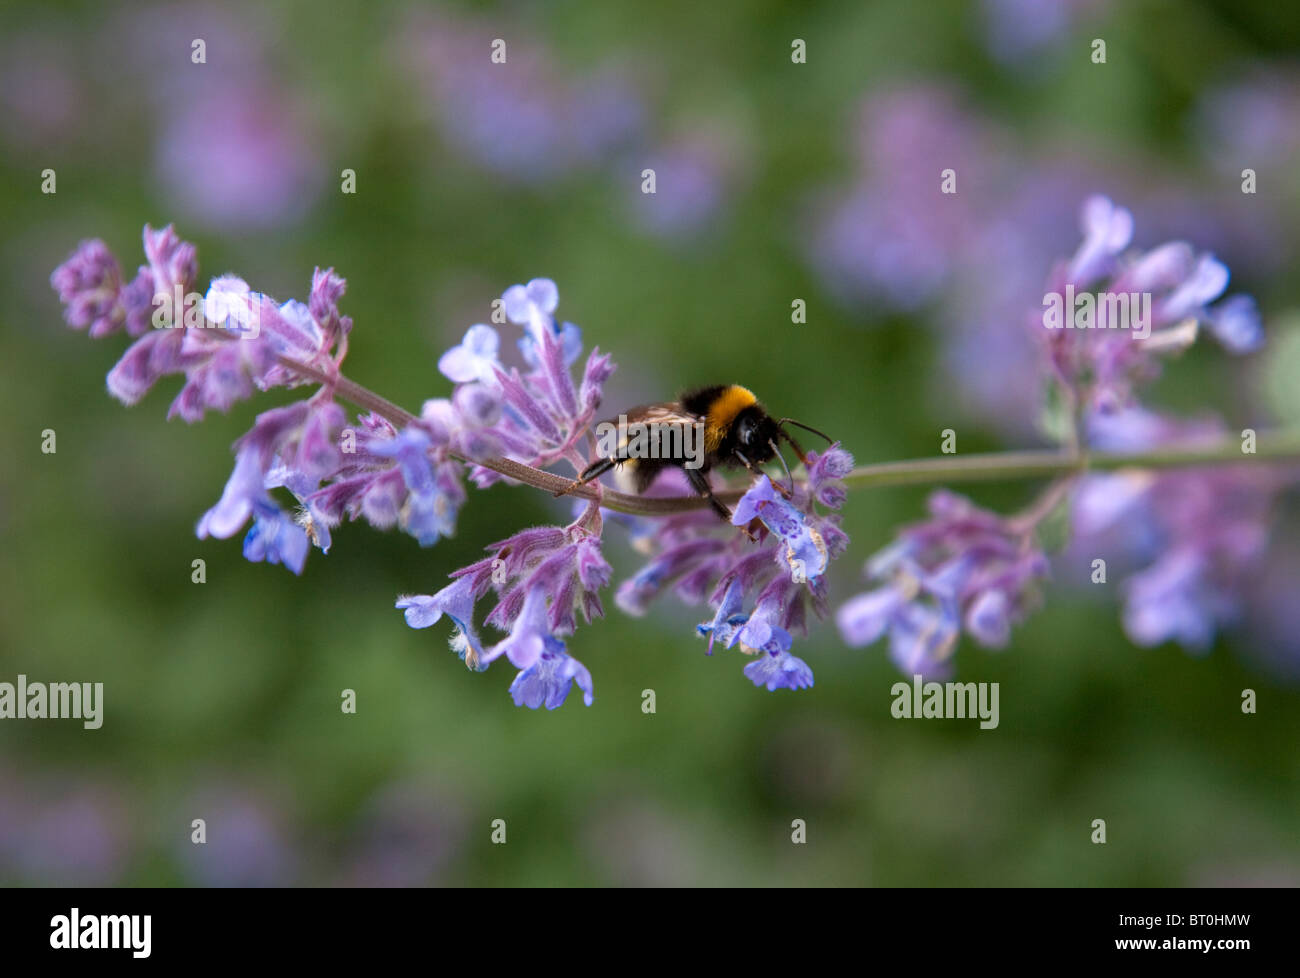 Bumble bee on Salvia flower, Garden, England, Europe. - Stock Image